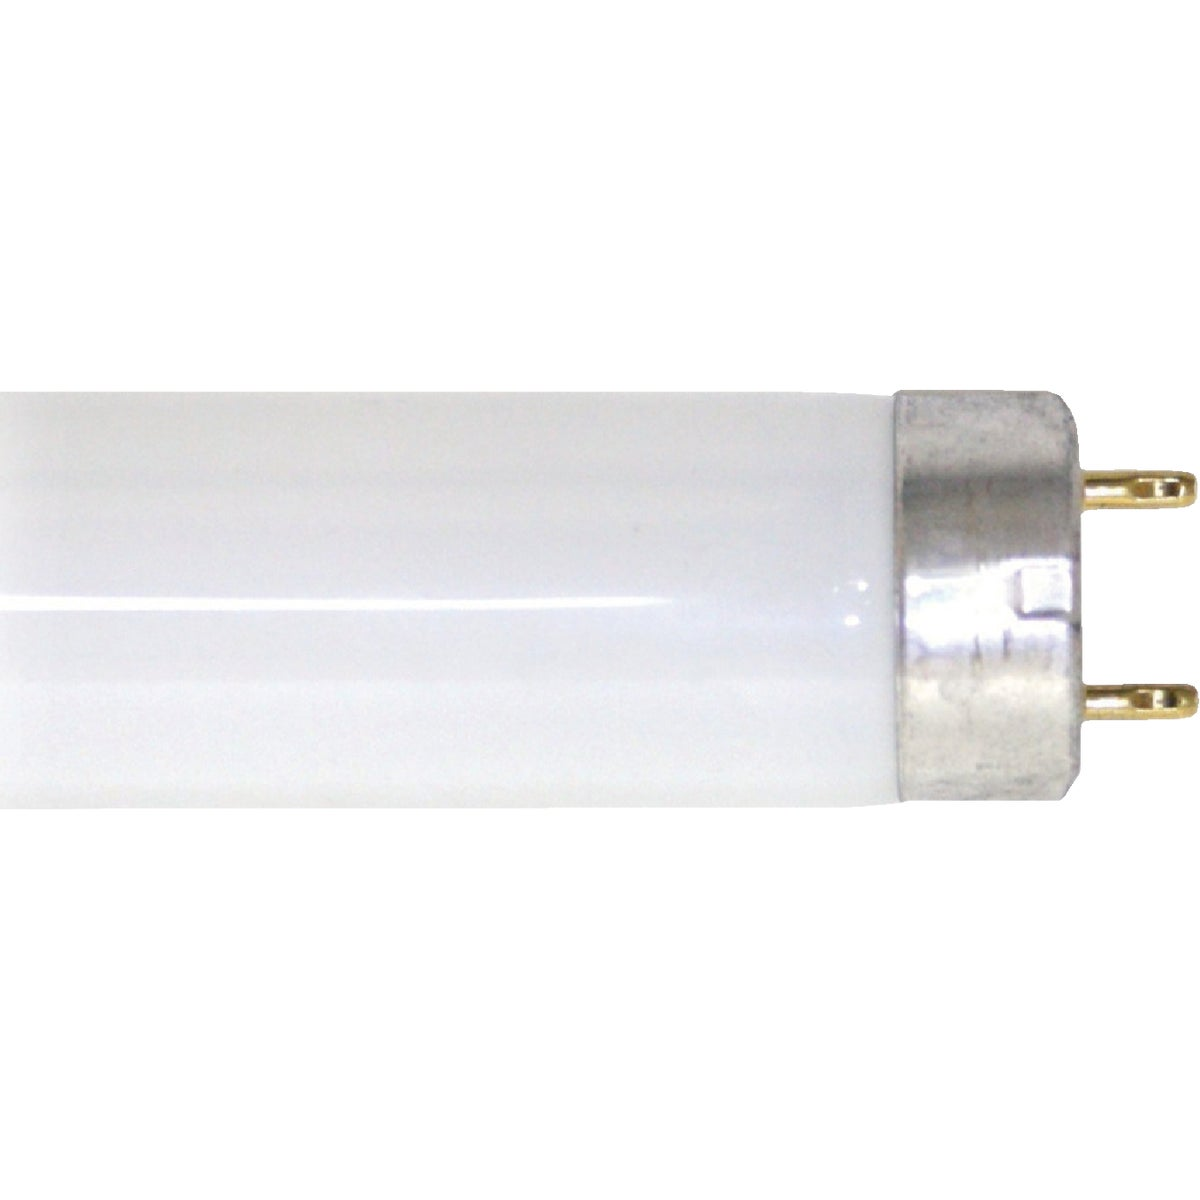 "30W 36"" T8 CW FLUOR TUBE - 10316 by G E Lighting"